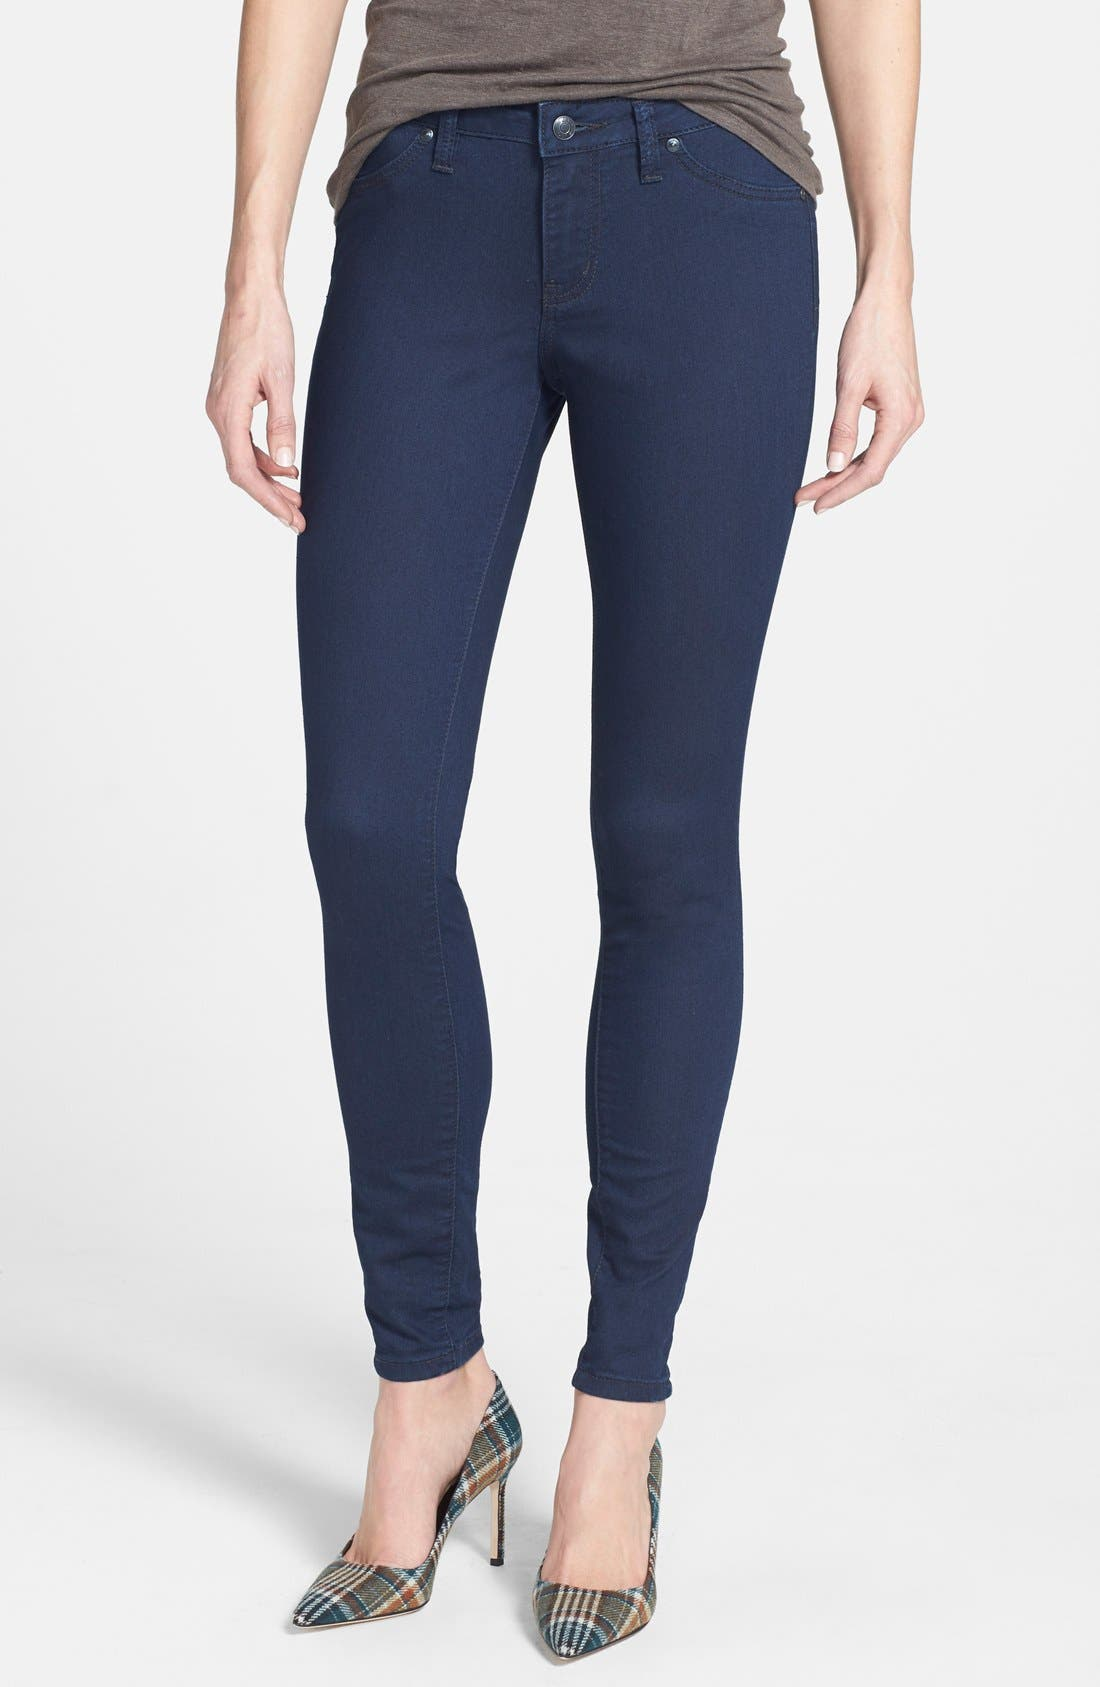 Alternate Image 1 Selected - Jag Jeans 'Cassie' Stretch Skinny Jeans